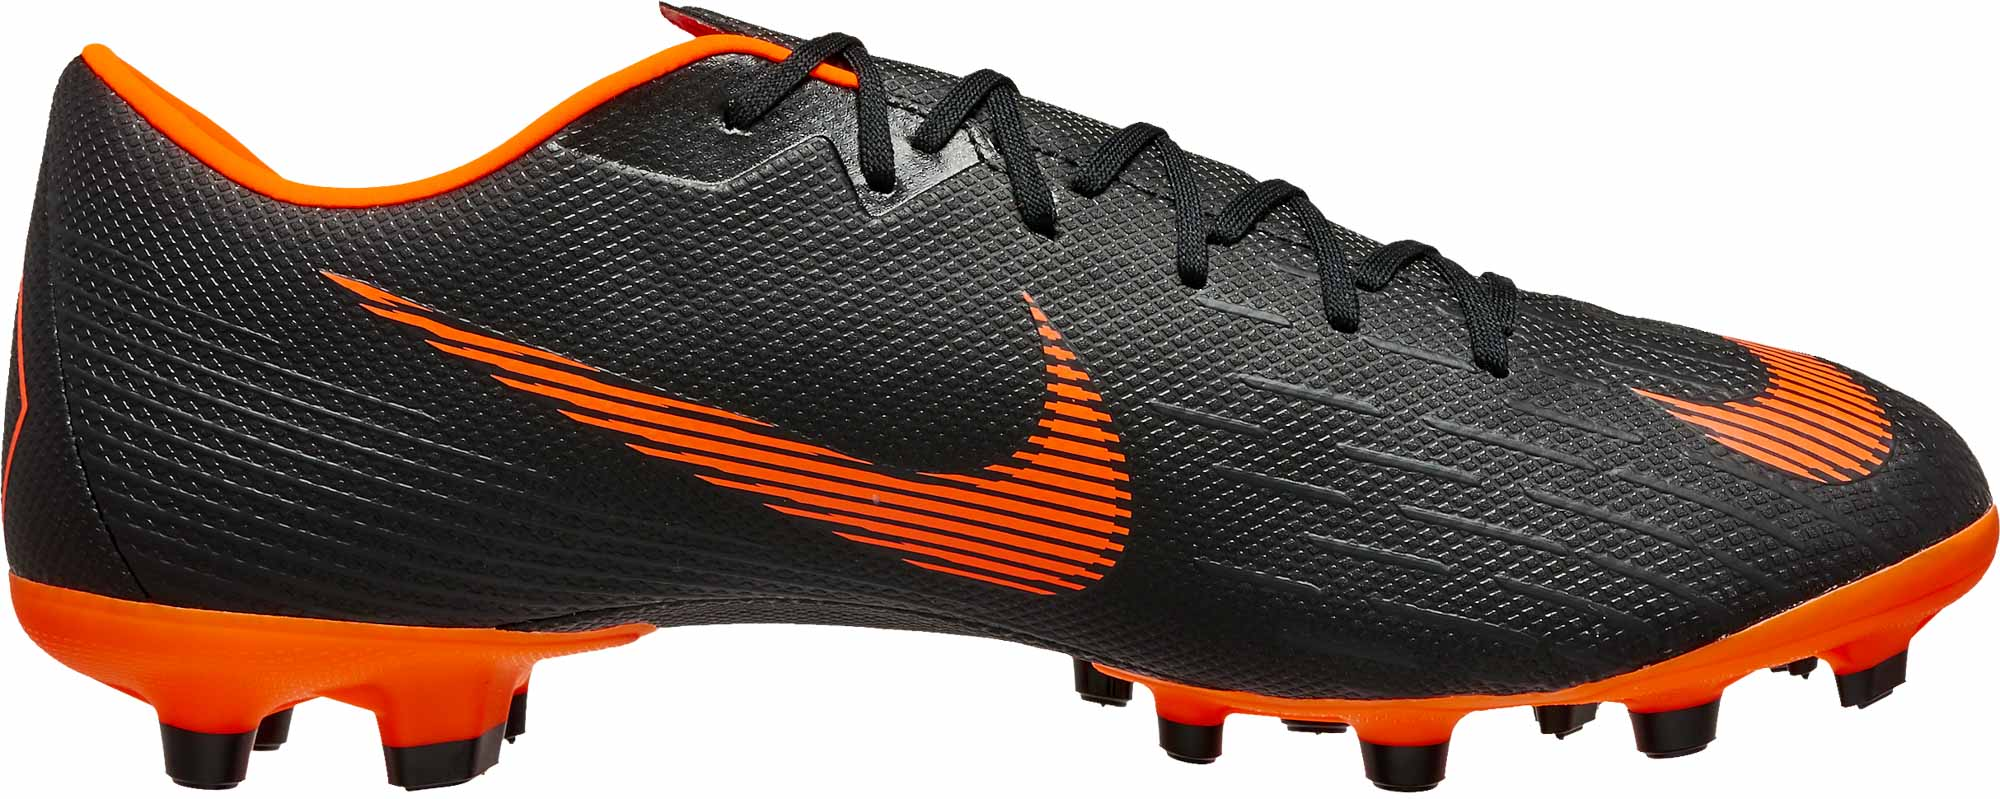 Home / Shop By Brand / Nike / Nike Soccer Shoes / Nike Mercurial ...